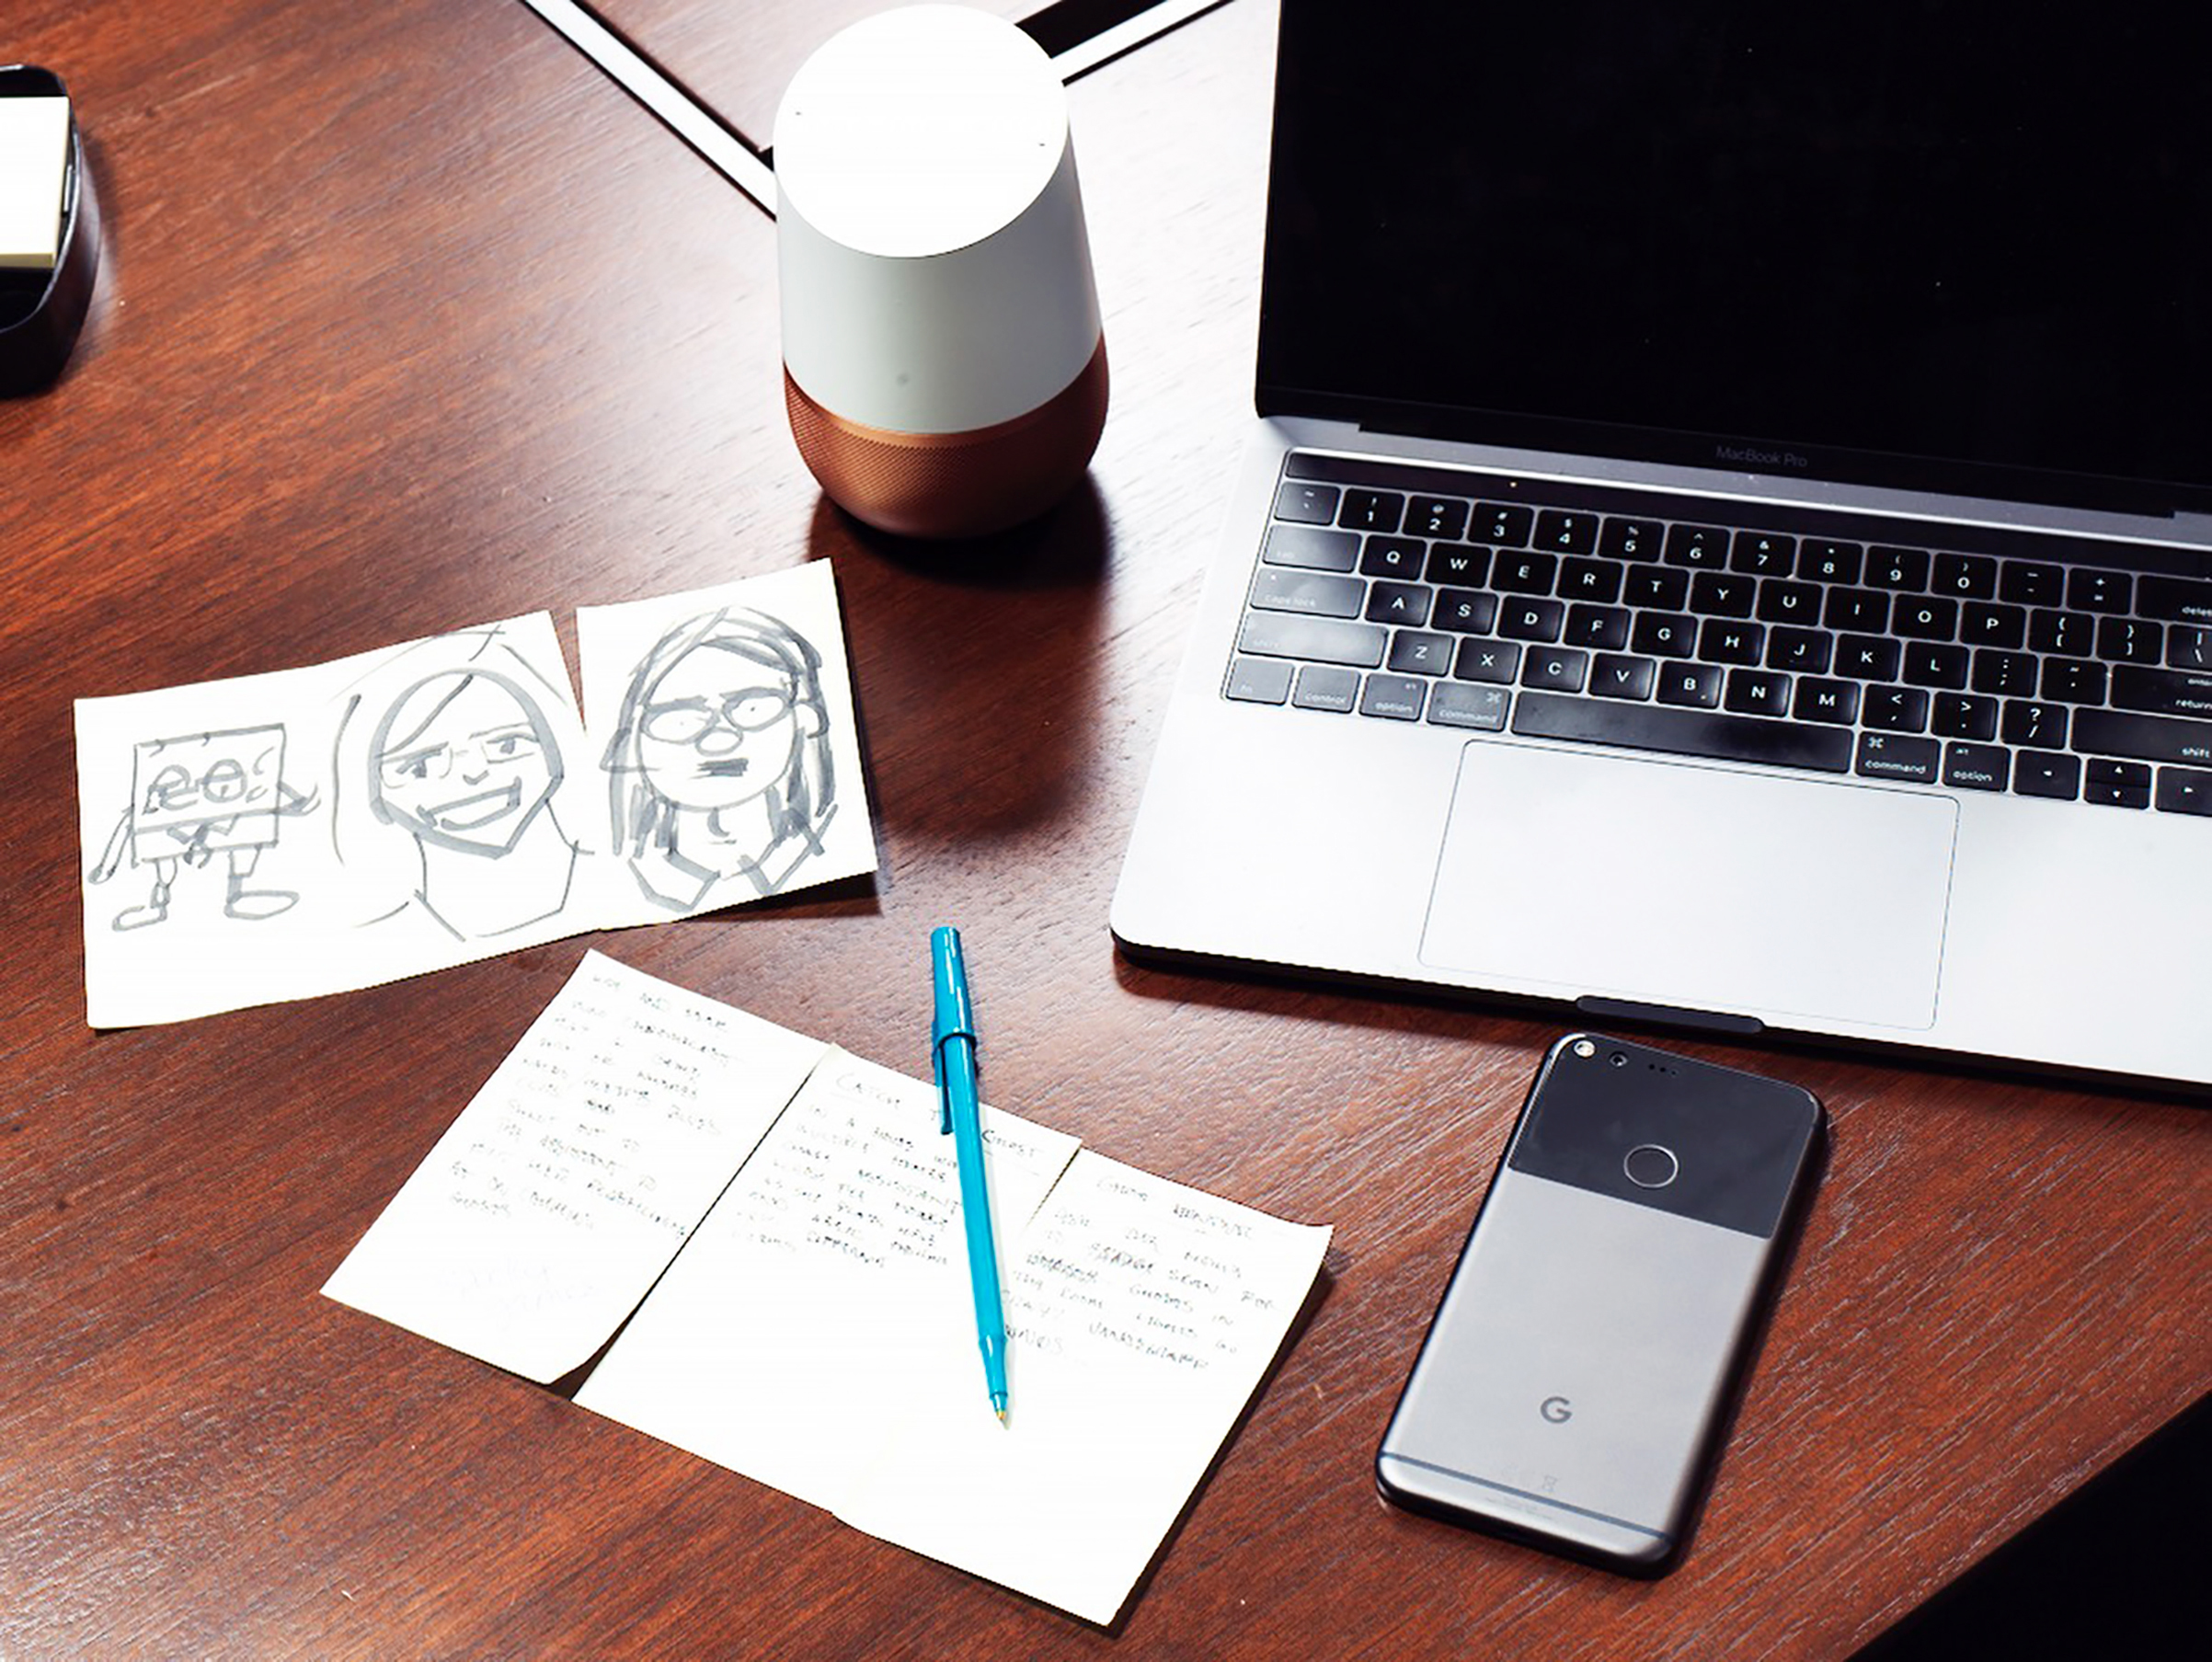 Google's personality team draws on a broad range of sources to hone the character of the company's voice-enabled Assistant. Writers use notes and doodles to track potential ideas that eventually show up in products like this white-and-brass-colored Google Home, top center, and the Pixel smartphone, bottom right.